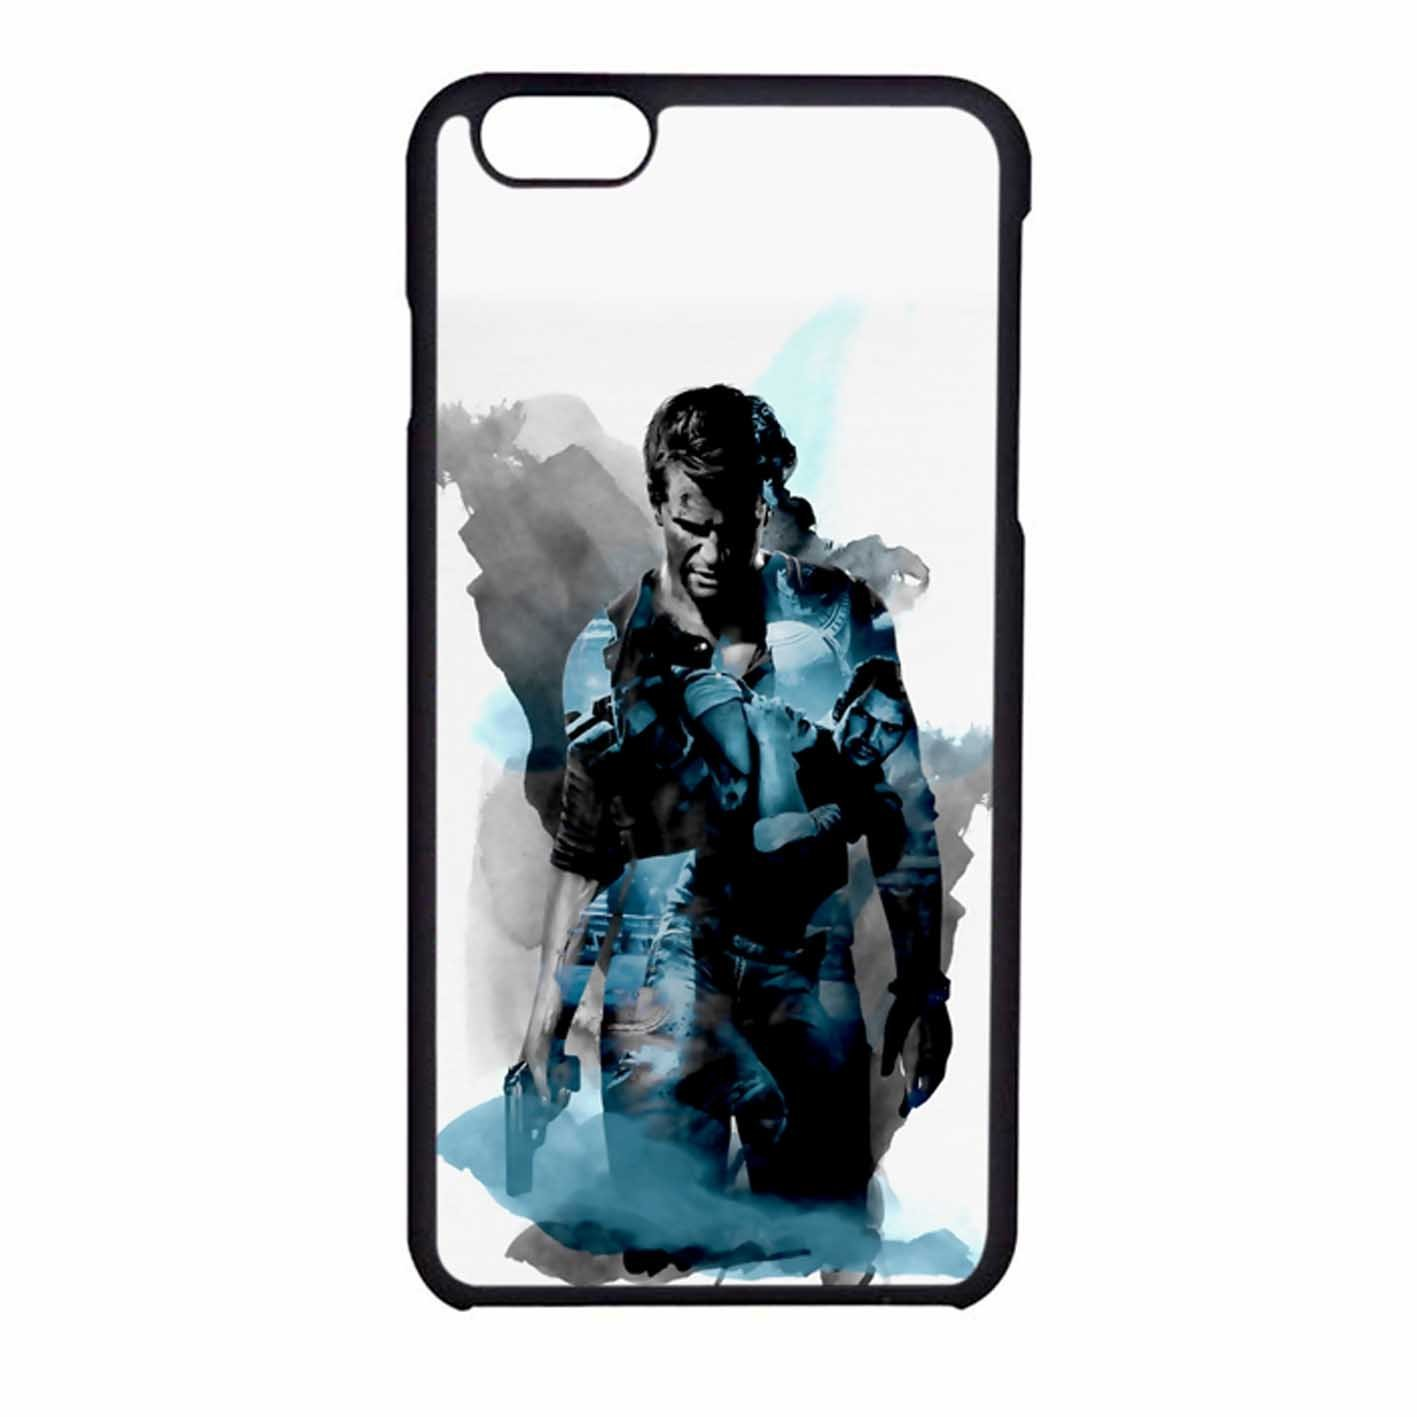 Uncharted 4 Nathan Drake Design For Iphone - Kylie Jenner Cover Iphone - HD Wallpaper